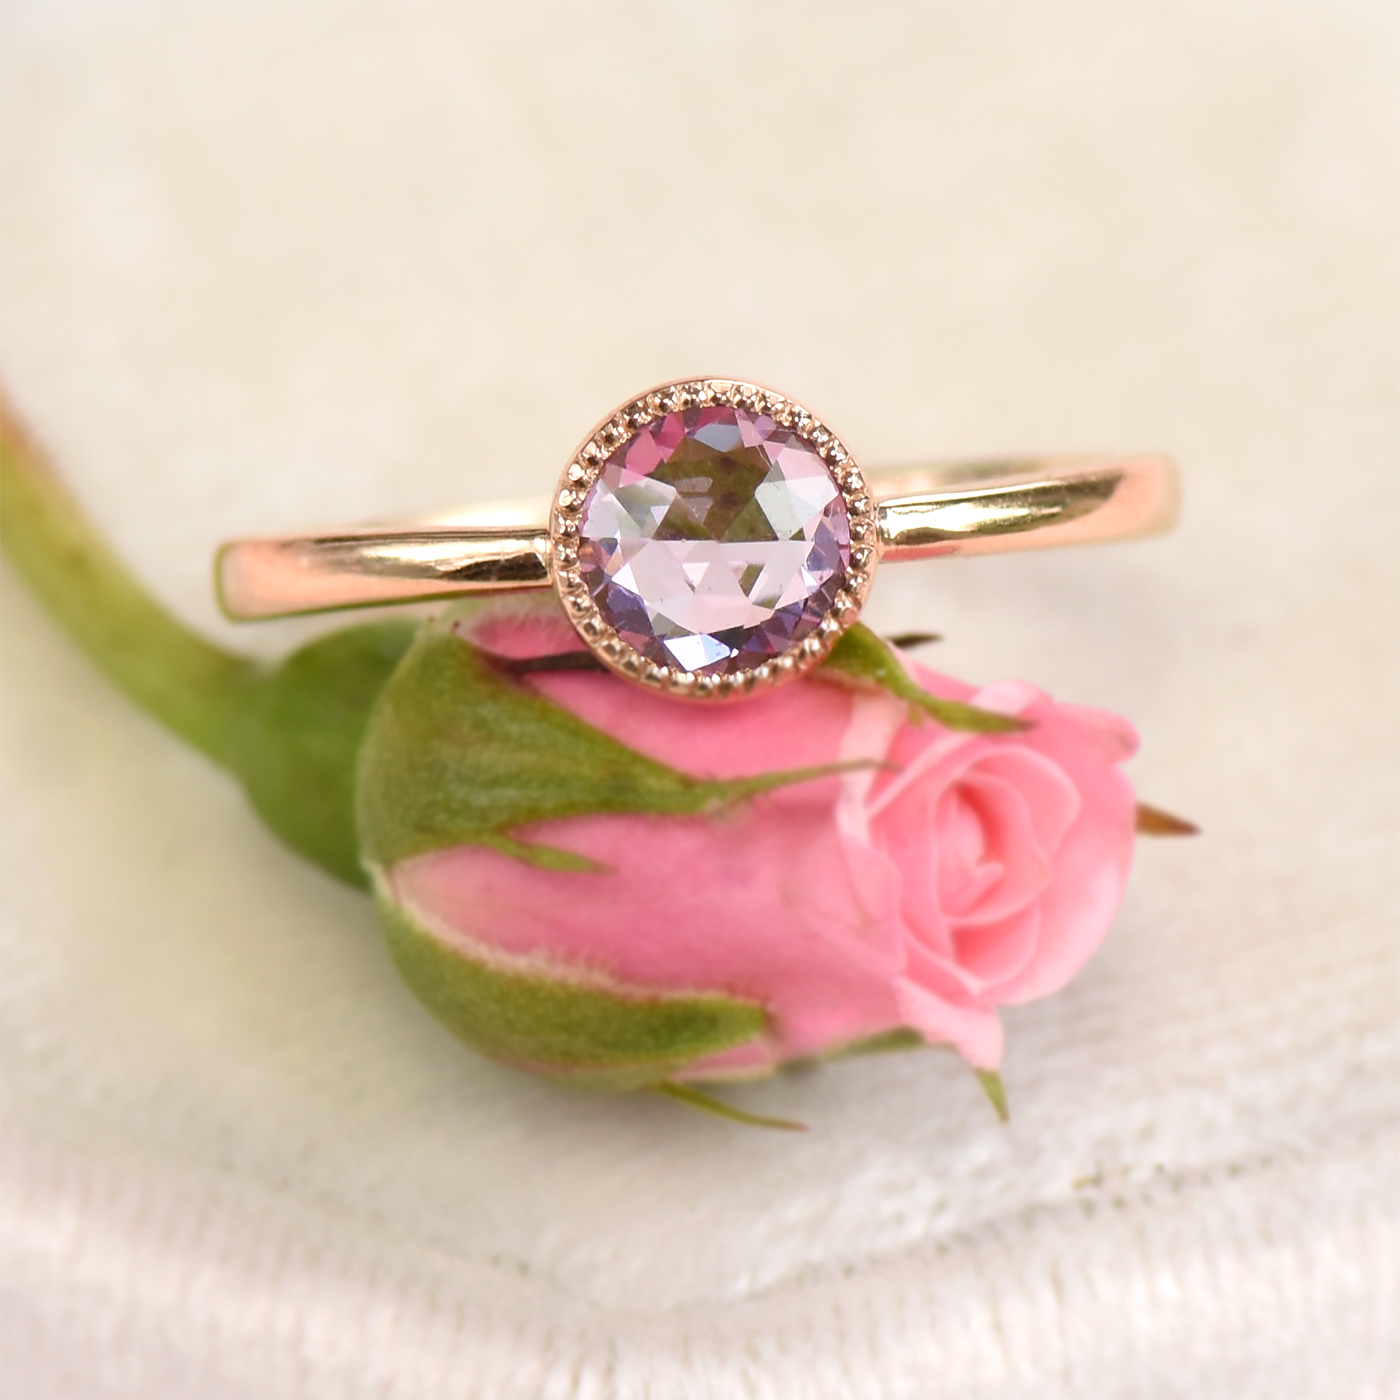 18ct Rose Gold Violet Pink Rose Cut Sapphire Ring - Size L 1/2 ...